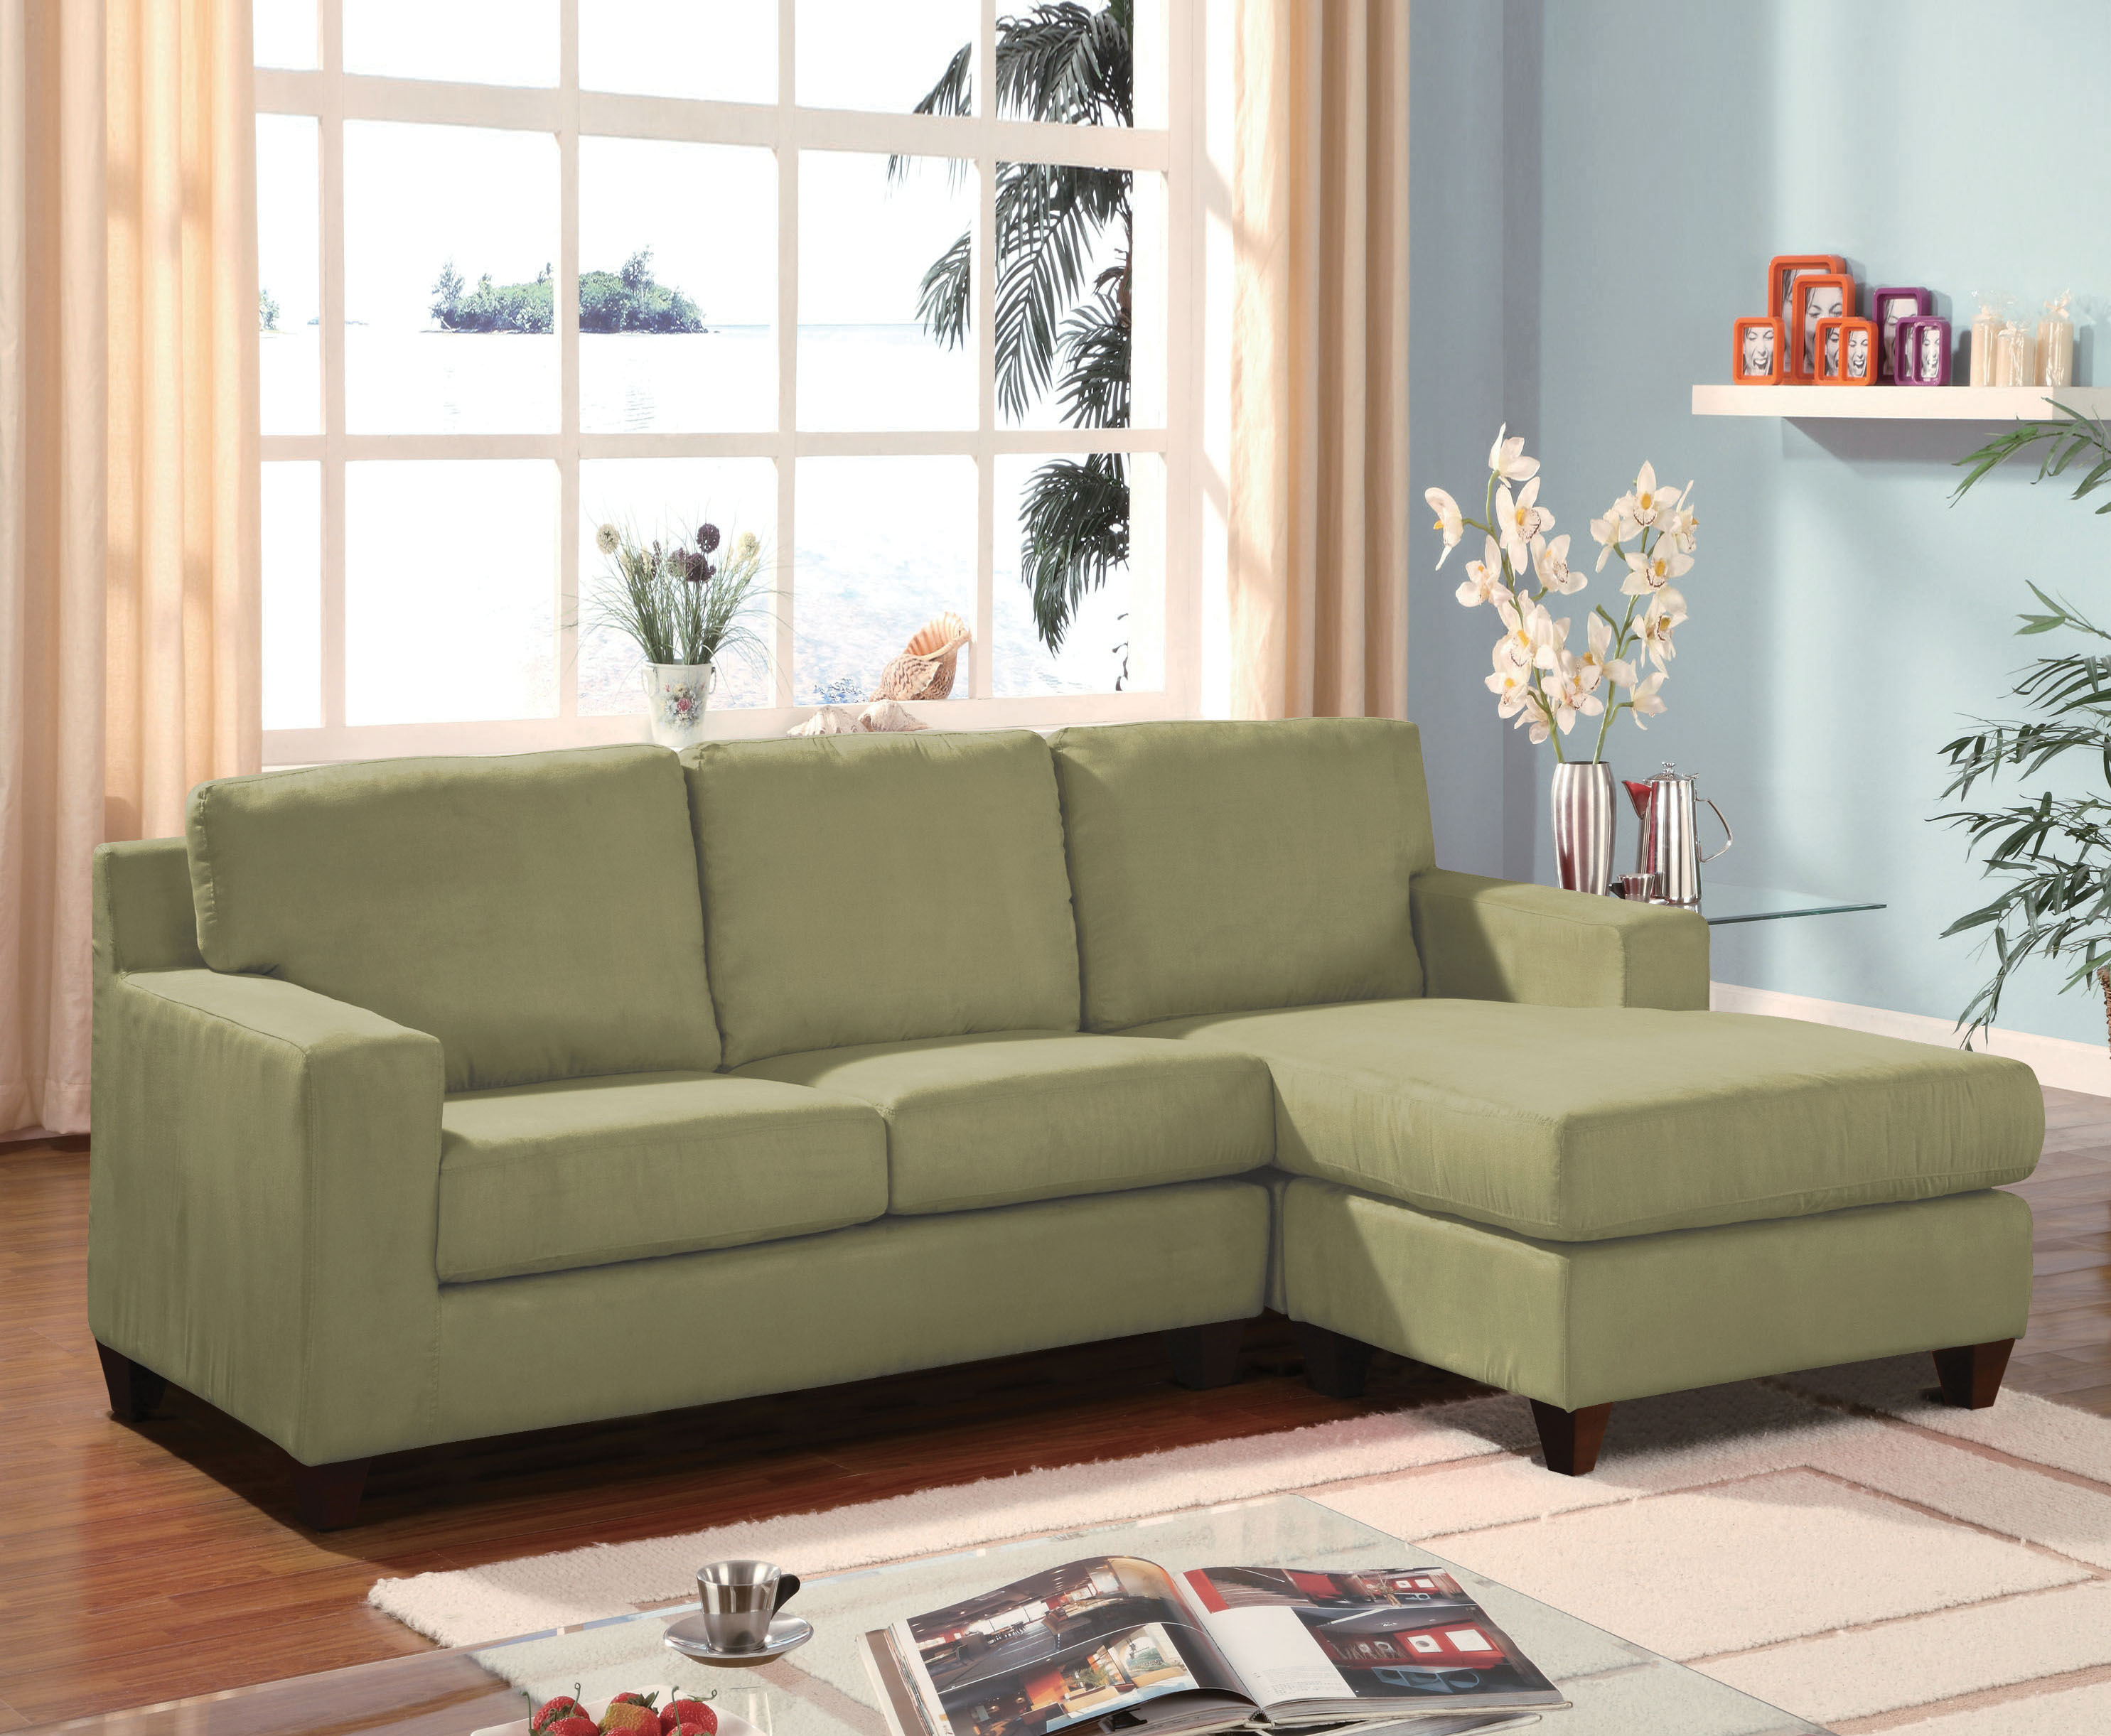 Acme Furniture Vogue Sage Reversible Chaise Sectional Sofa Click To Enlarge